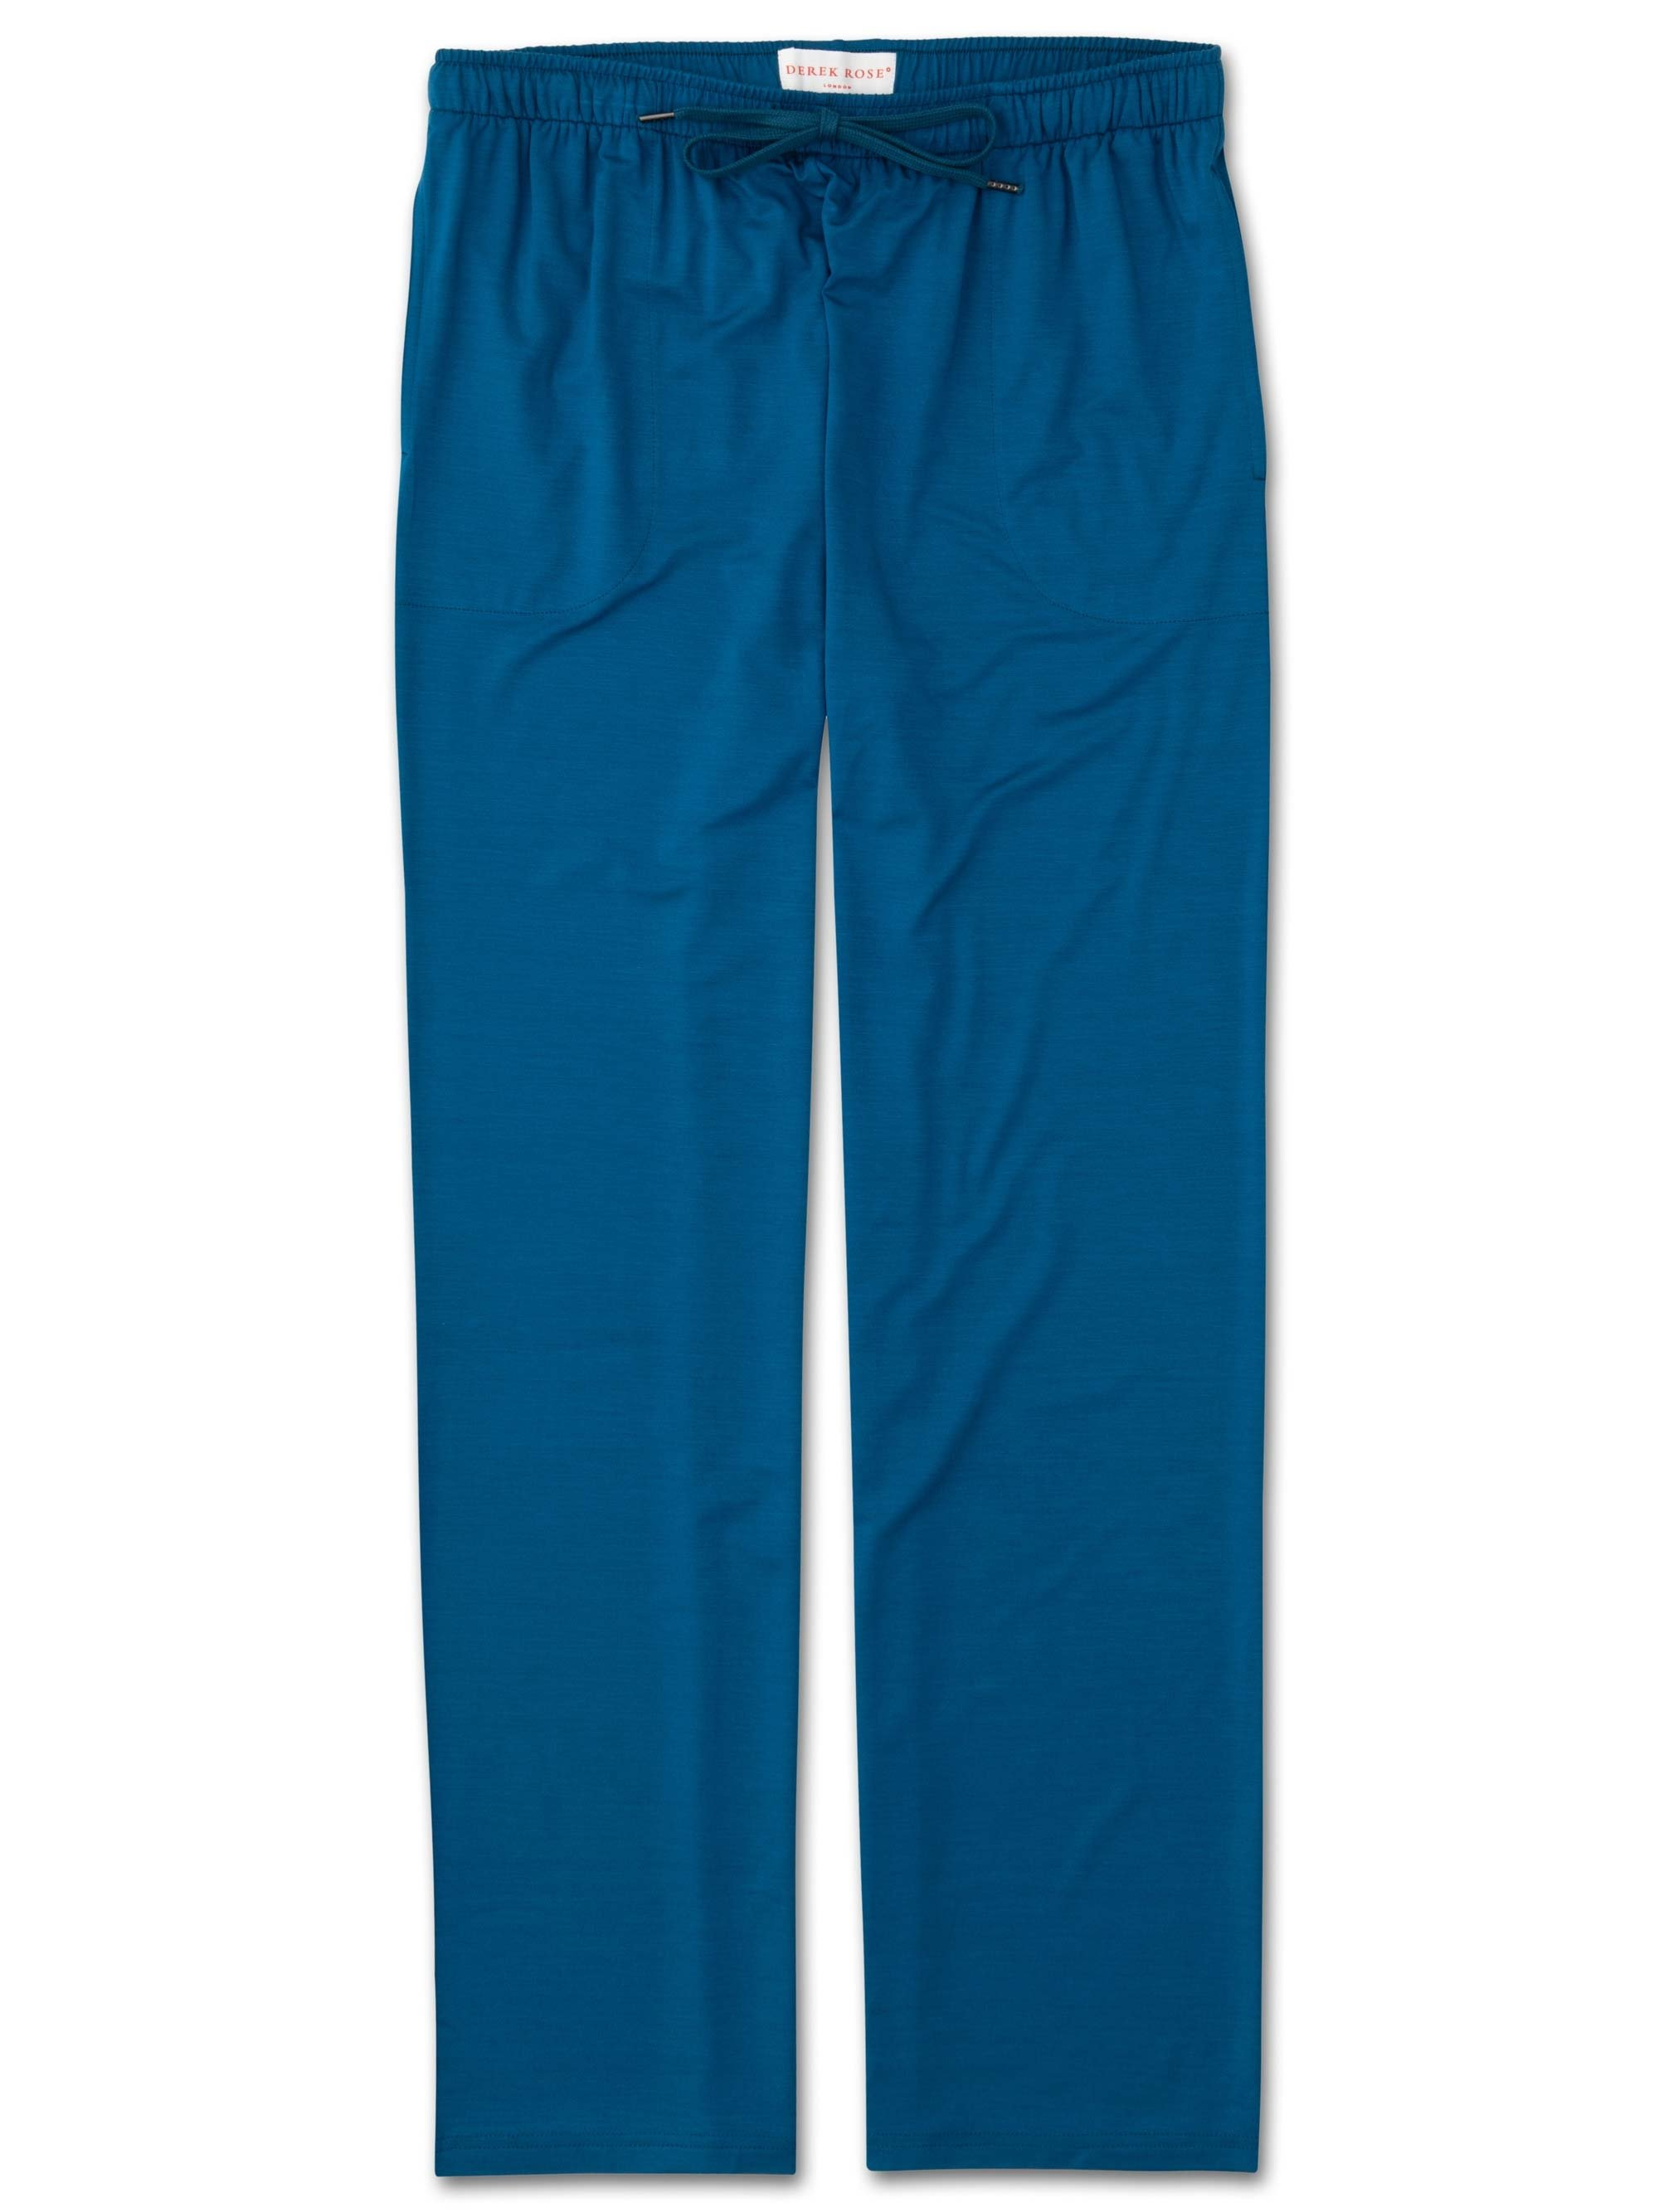 Men's Jersey Trousers Basel 7 Micro Modal Stretch Ocean